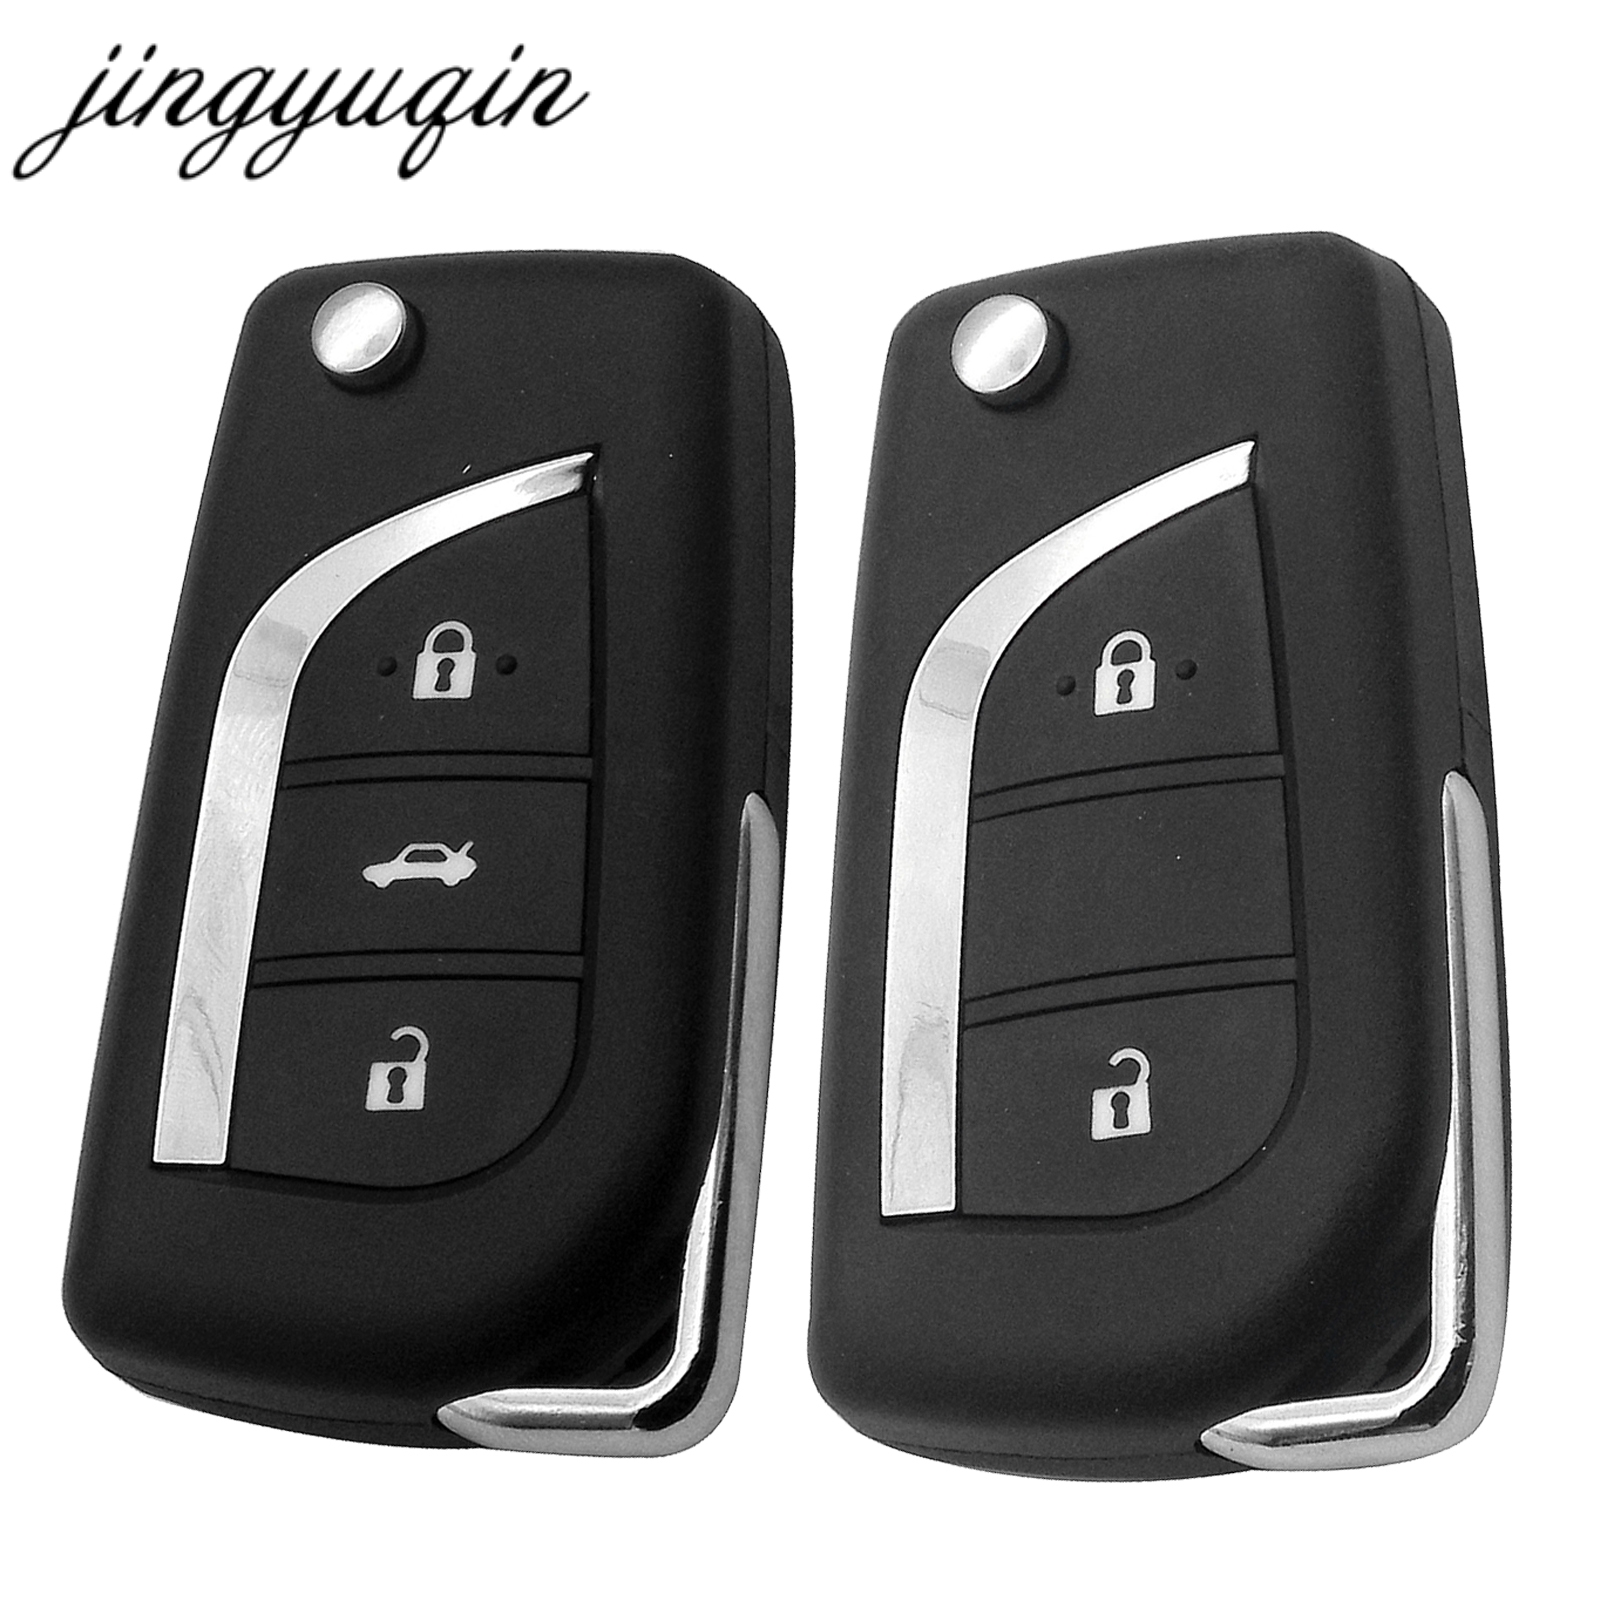 jinyuqin 2/3 Button Flip Folding Remote Key Shell for Toyota Levin Camry Reiz Highlander Corolla Key Case Toy48 Toy43(China)